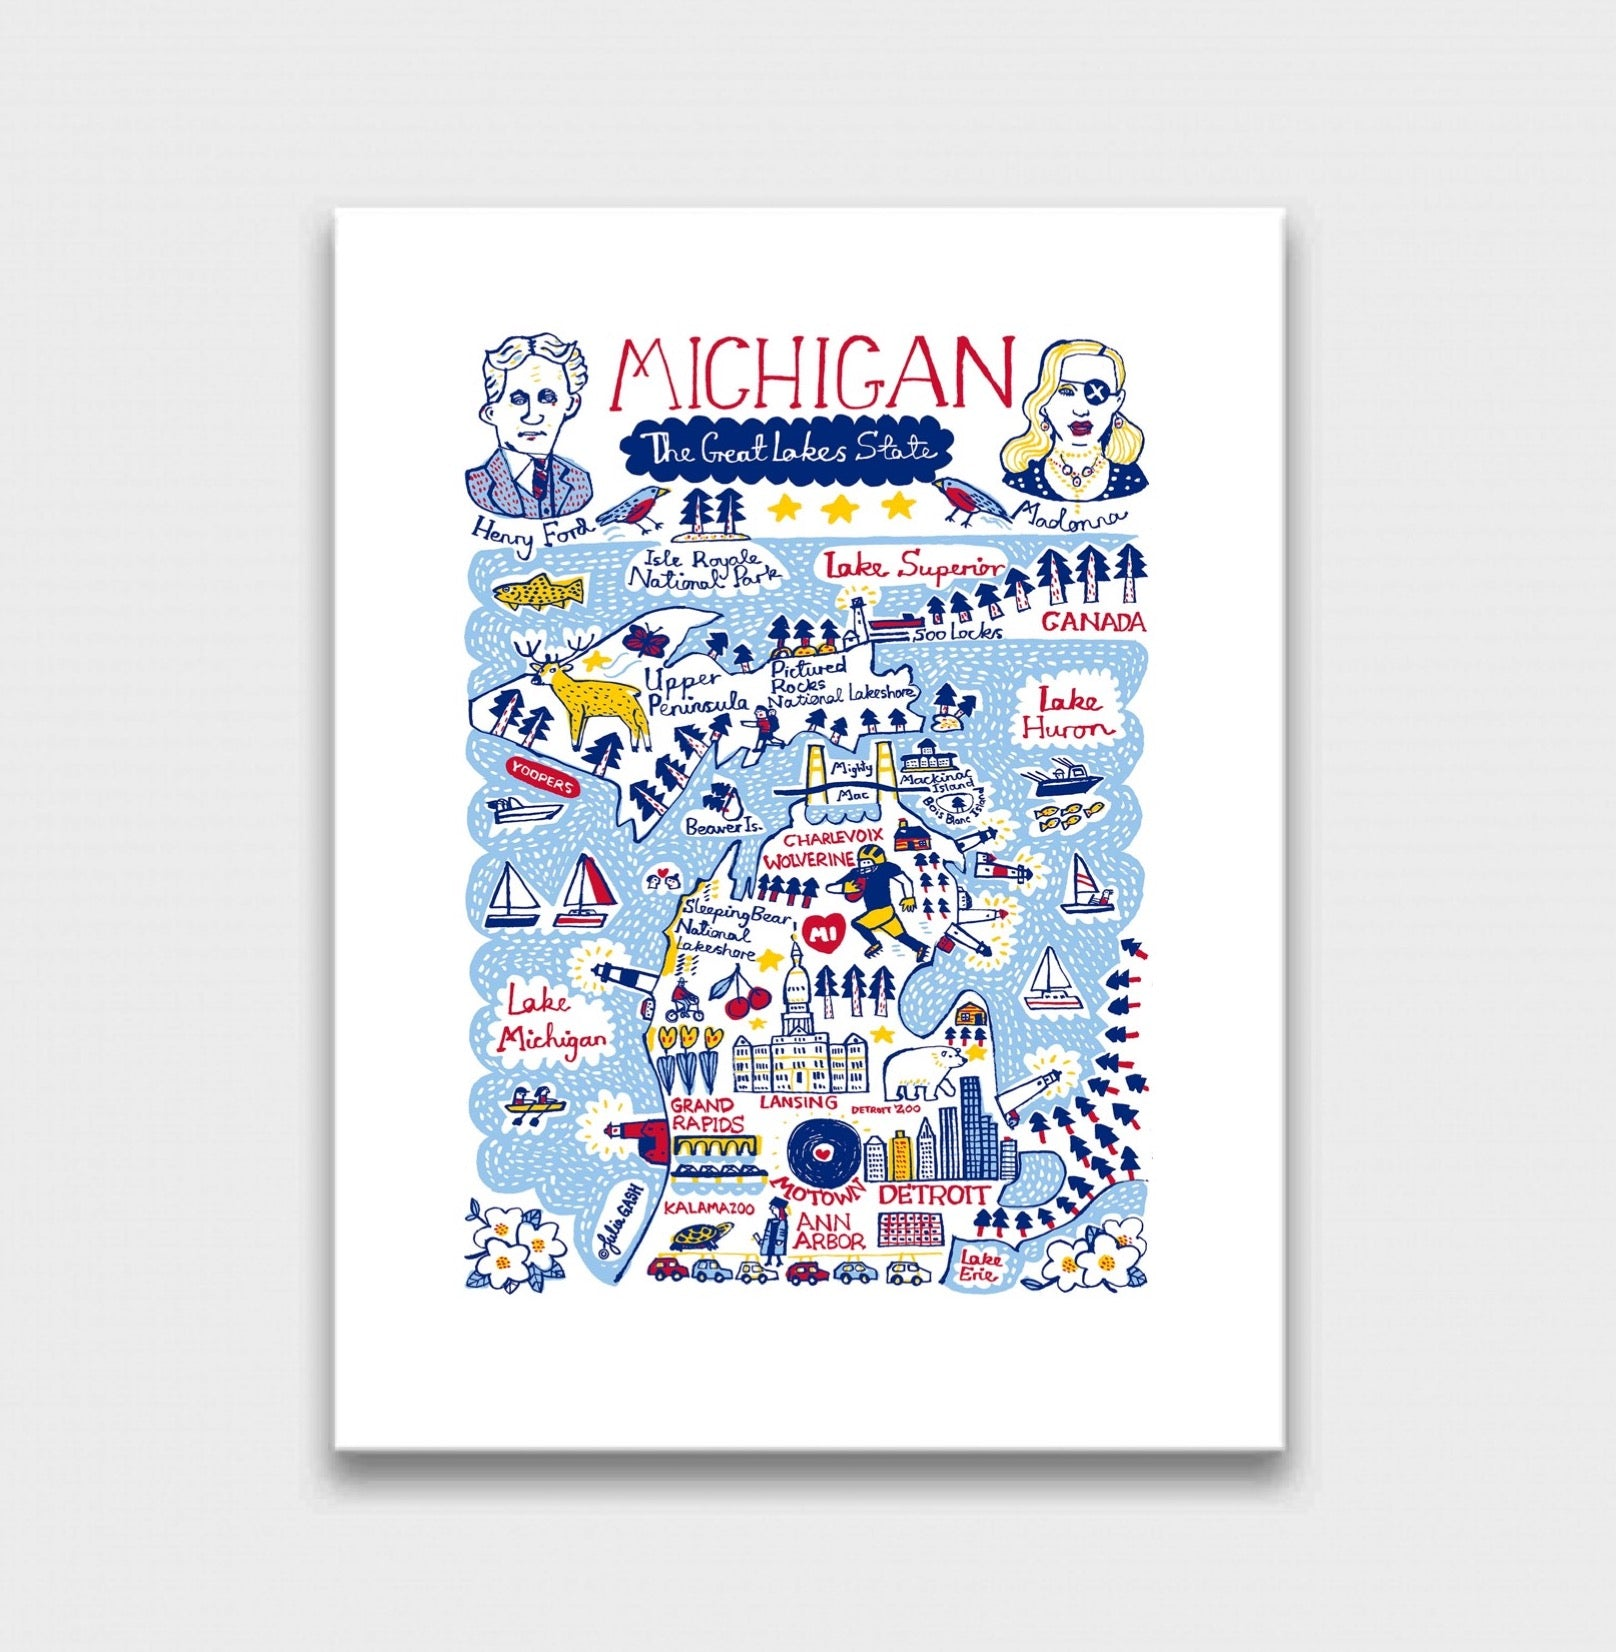 Michigan Art Print - Julia Gash